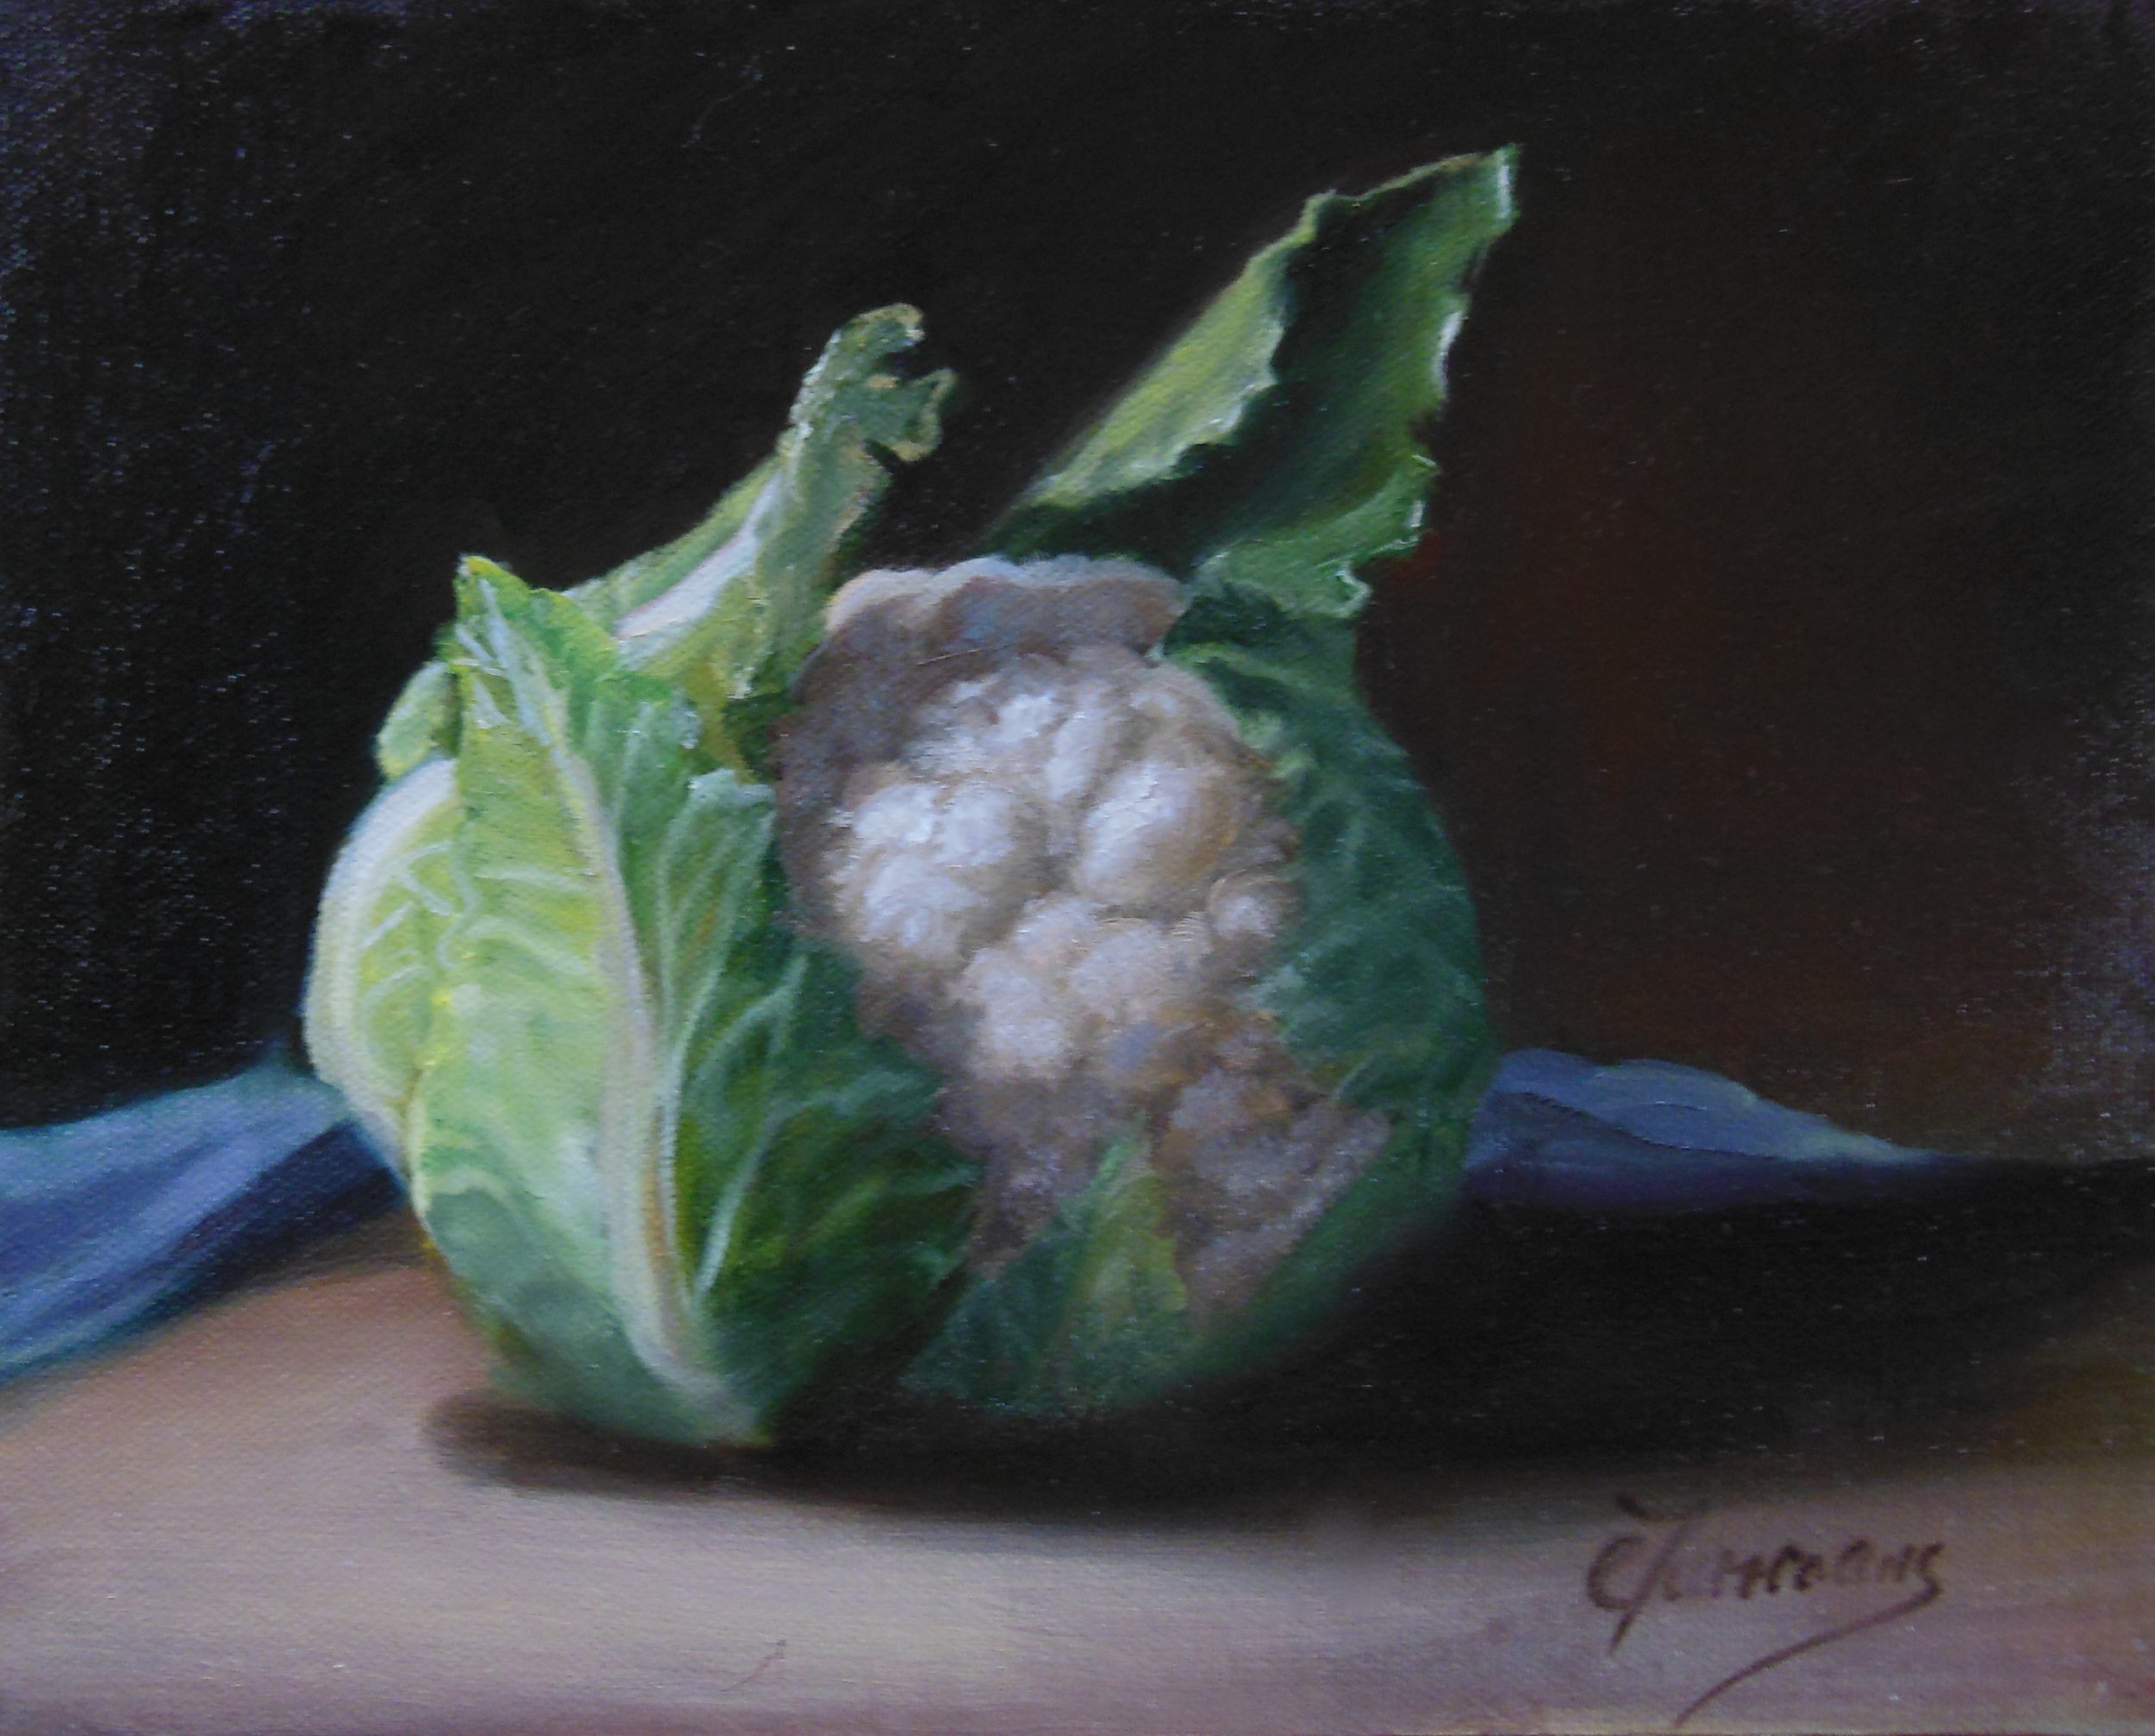 Cauliflower-oil-8x10-caryjurriaans.JPG